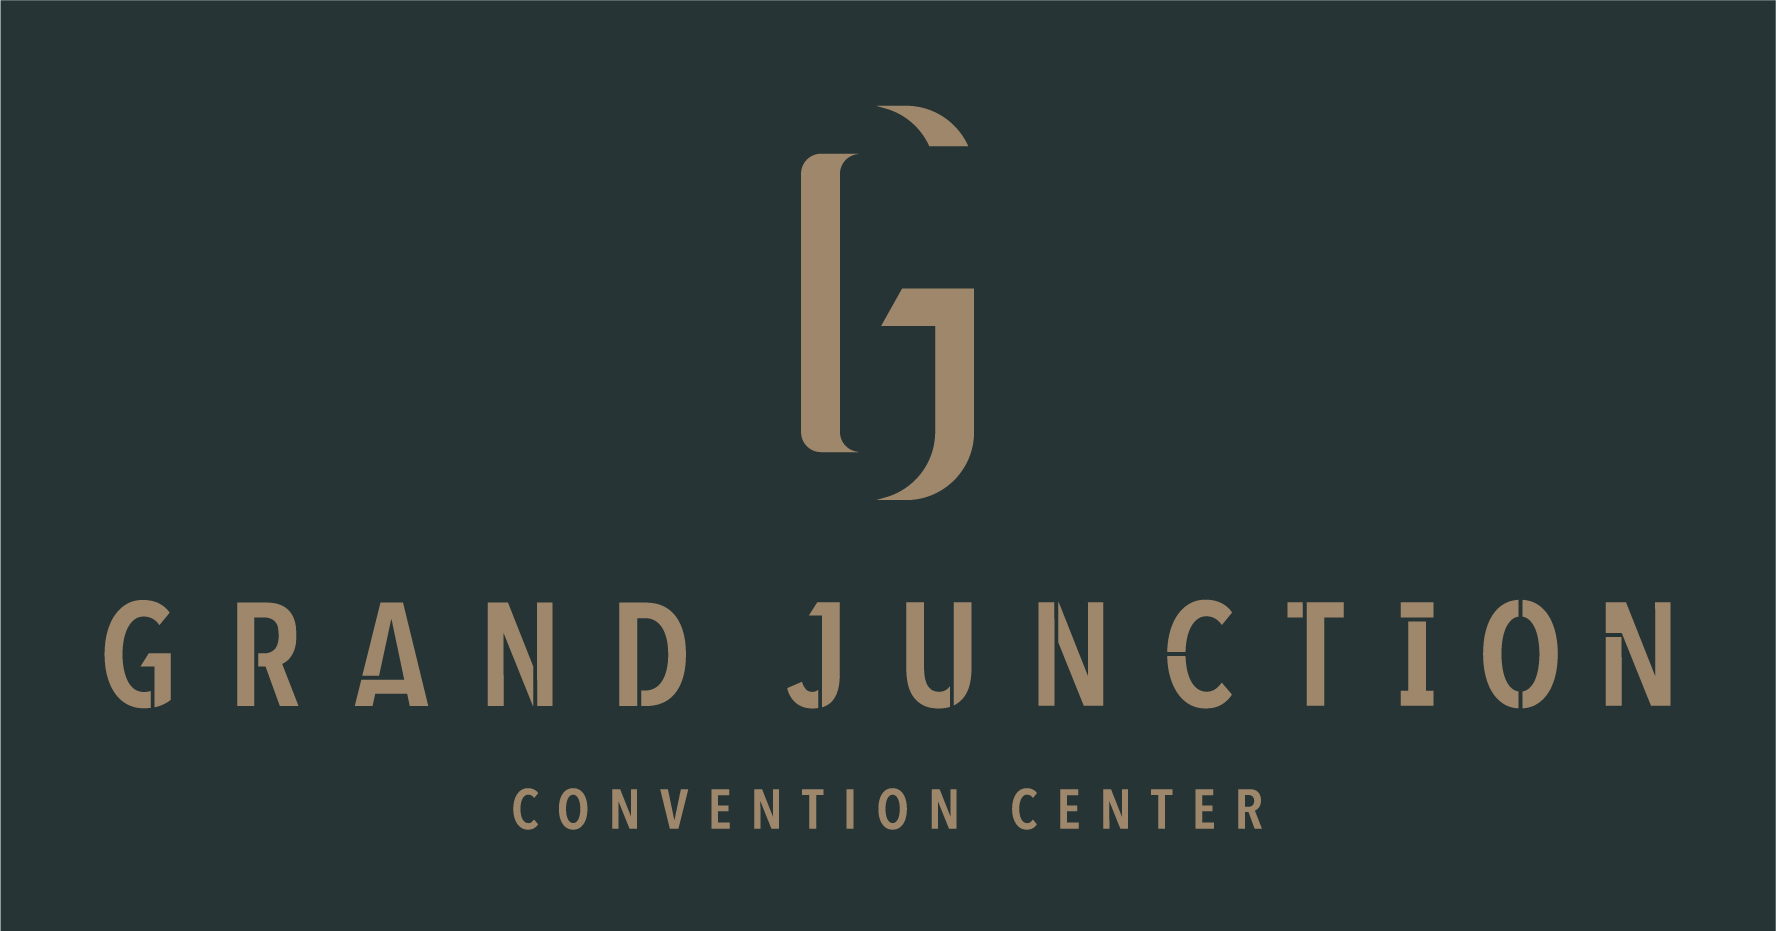 Grand Junction Convention Center 159 Main St, Grand Junction